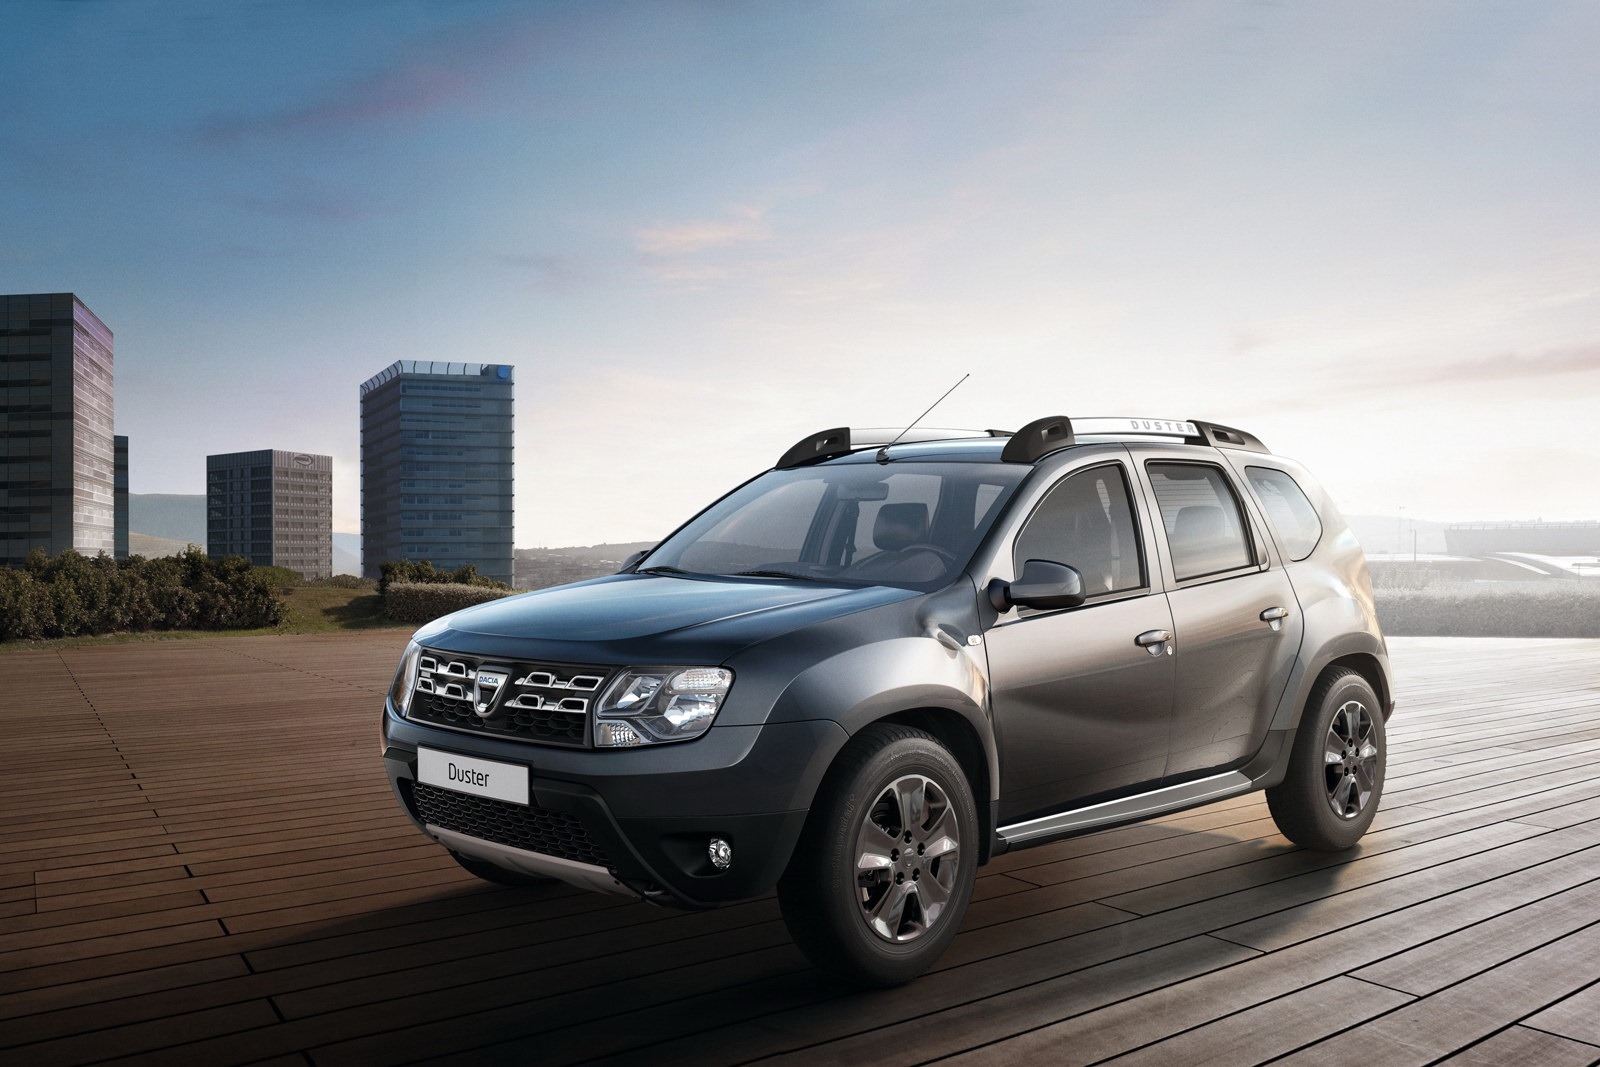 2012 - [Dacia] Duster restylé - Page 7 Dacia-Duster-facelift-14%25255B2%25255D